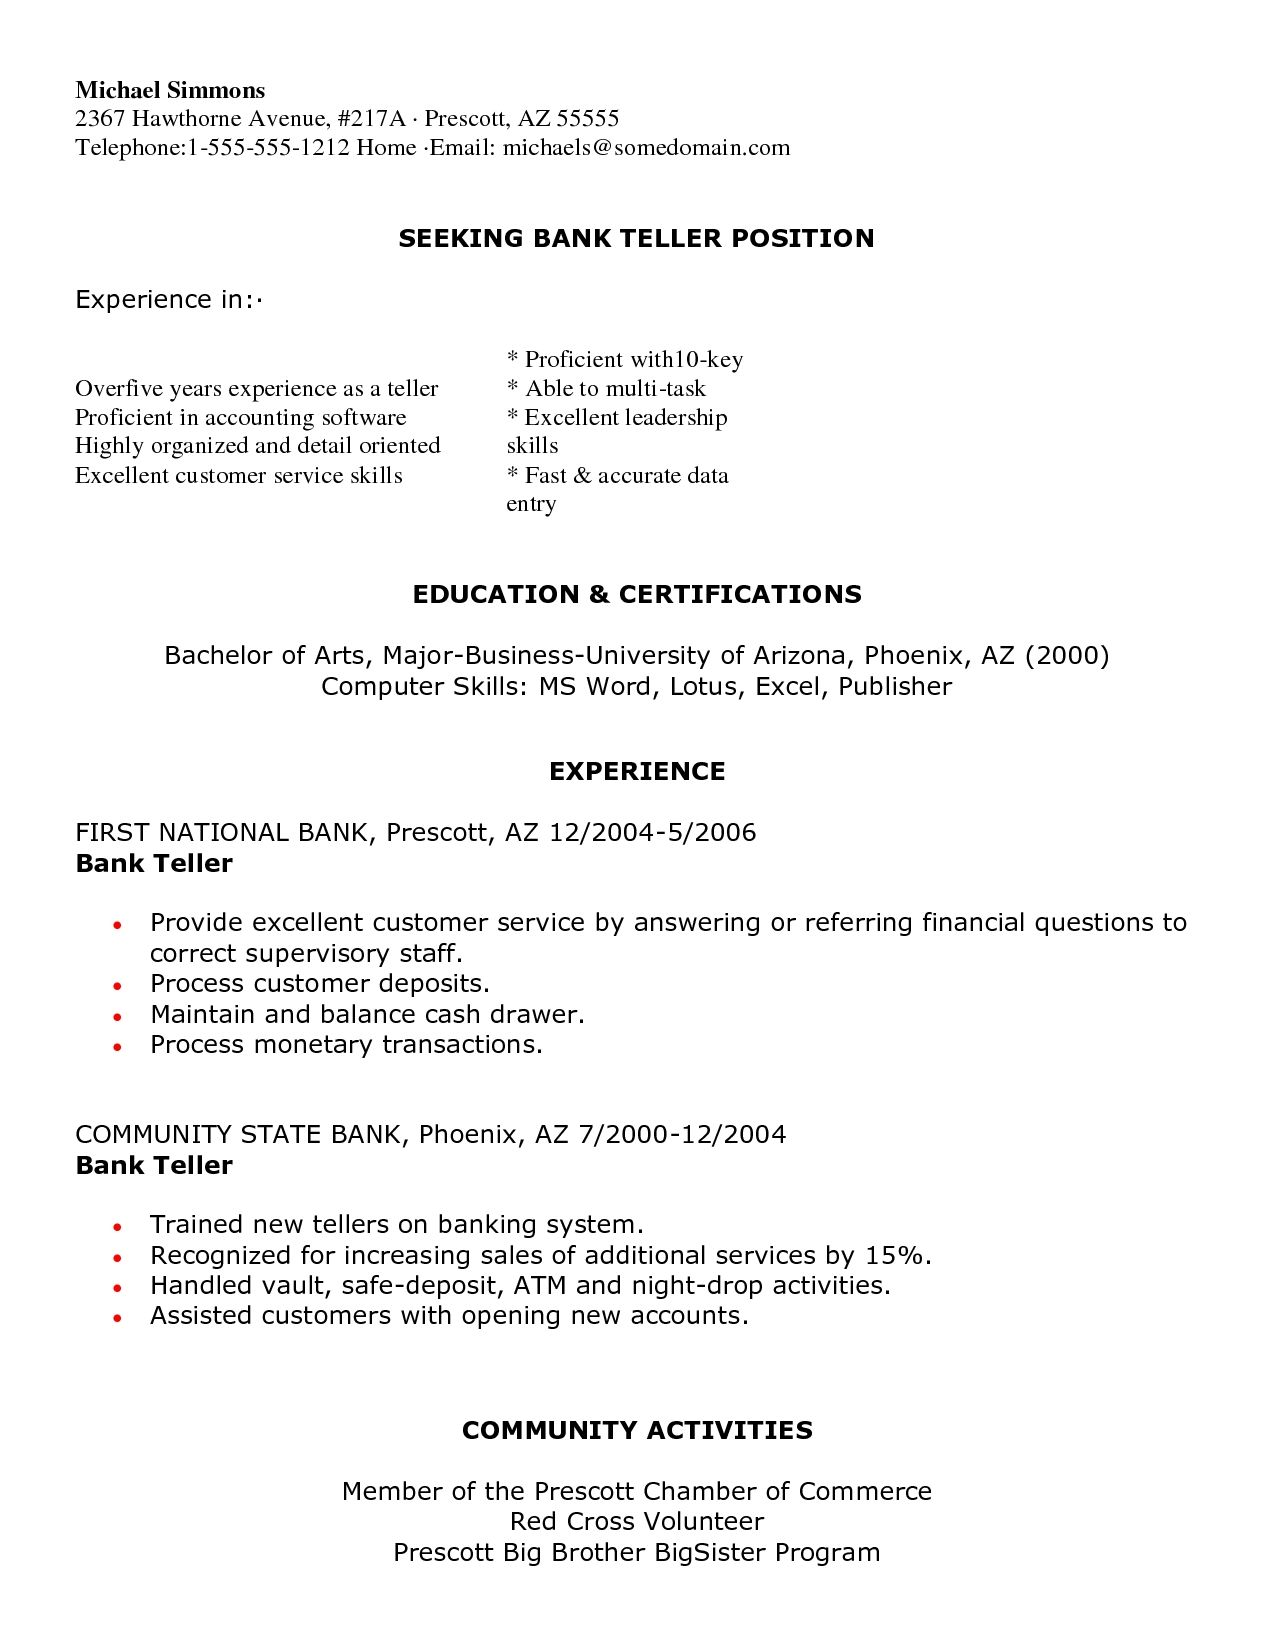 Image result for bank teller resume samples | Work from home offers ...